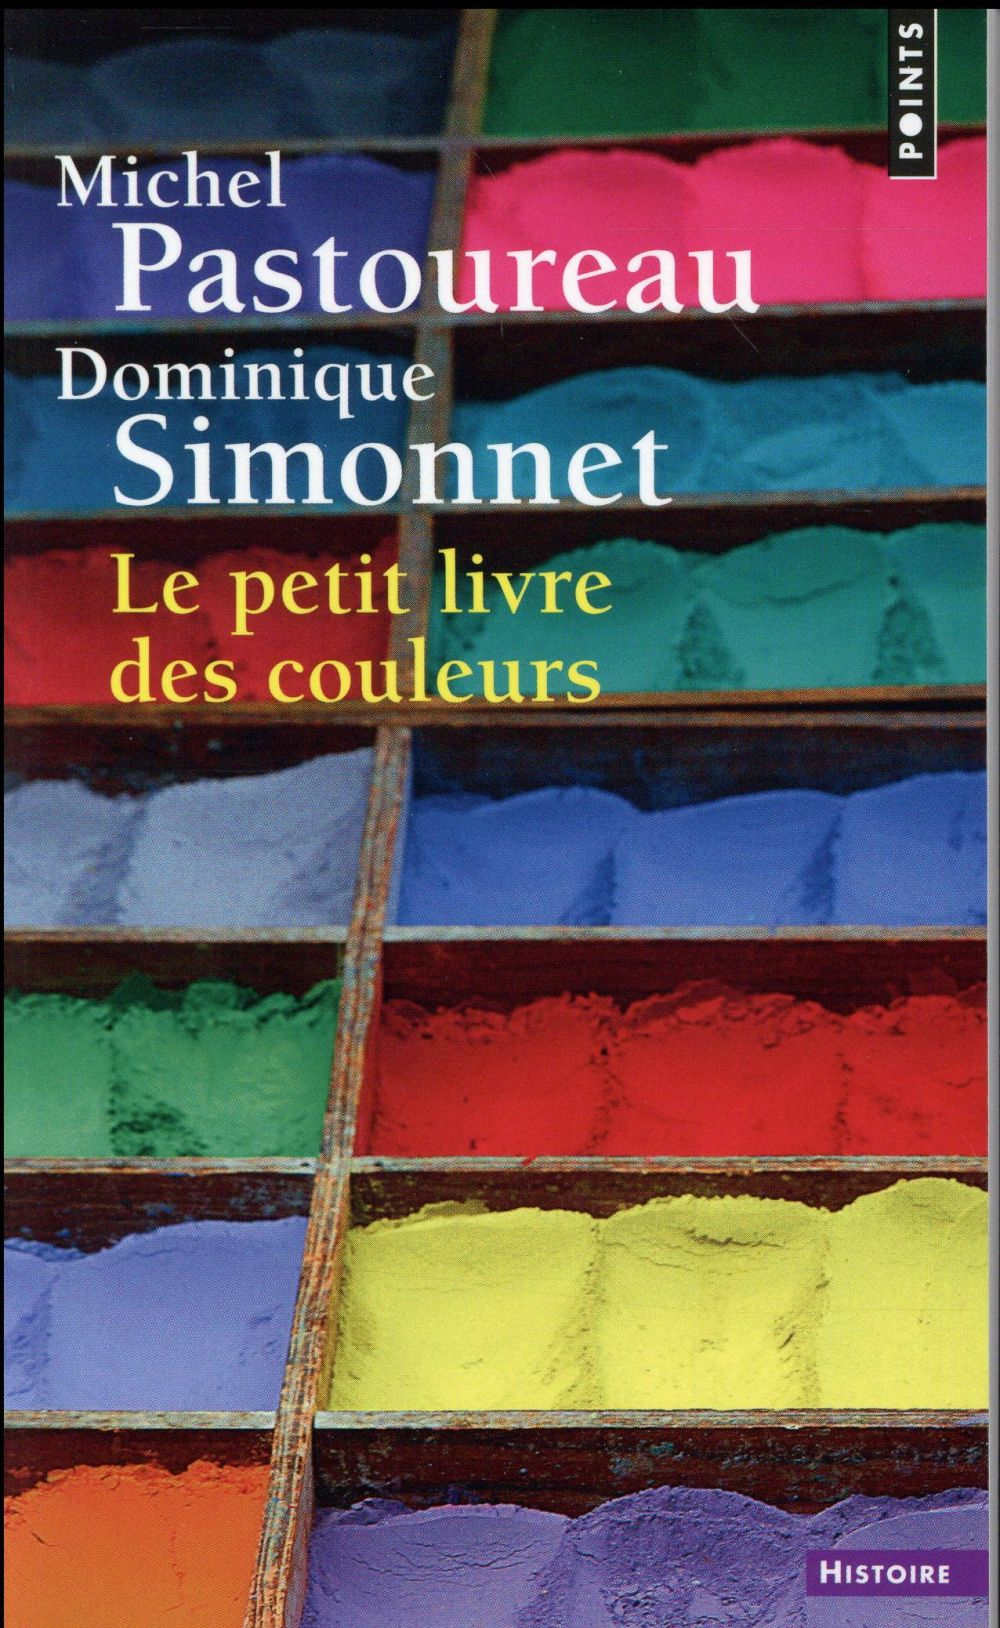 https://webservice-livre.tmic-ellipses.com/couverture/9782757841532.jpg Simonnet Dominique Points